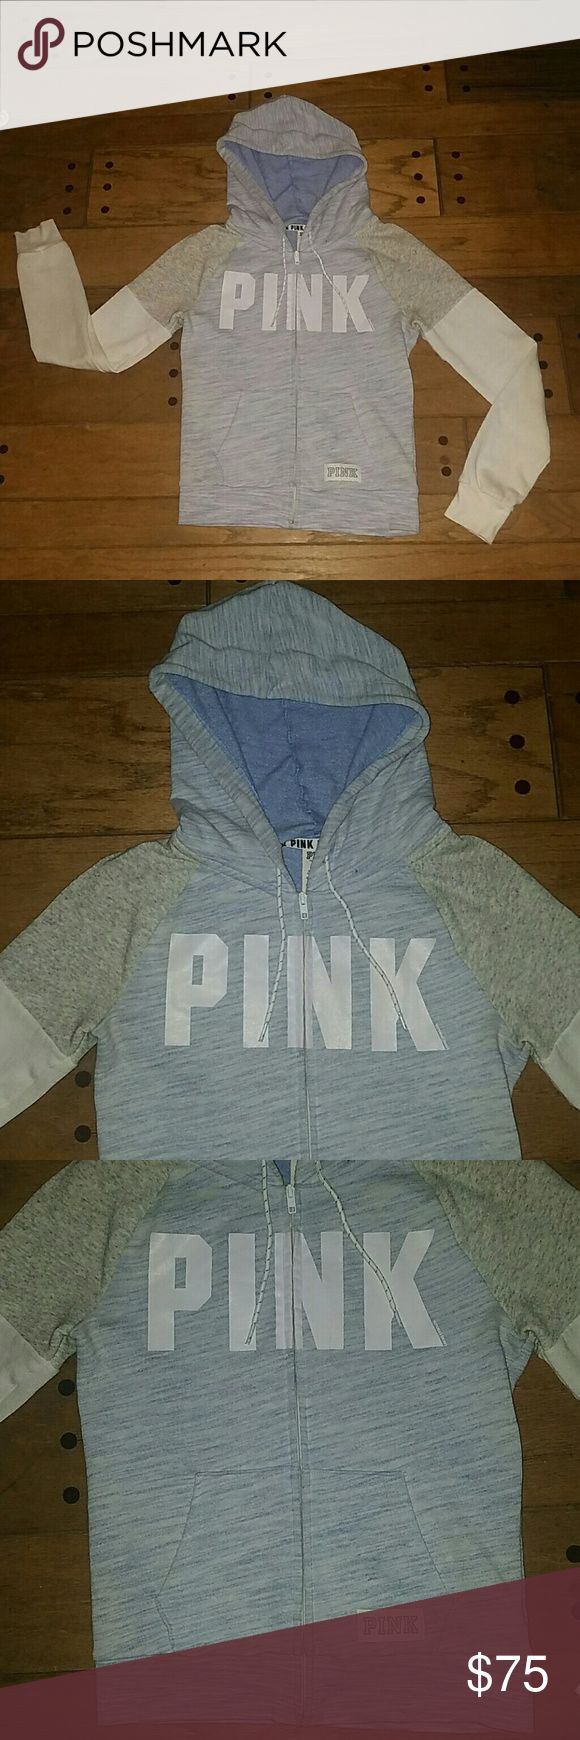 PINK Zip Up Hoodie Women's size small zip up hoodie by PINK from Victoria's Secret. Worn only a couple of times, AMD in excellent condition! Just slight discoloration at the wrists, since it is white material. Could even clean up if the time was taken! Super rare hoodie, sold out online last season in hours. EXTREMELY HARD TO FIND style and color. Absolutely love it! Marled grey, heathered grey and light pastel blue, and white. Adorable matching drawstrings, white with the pastel blue…